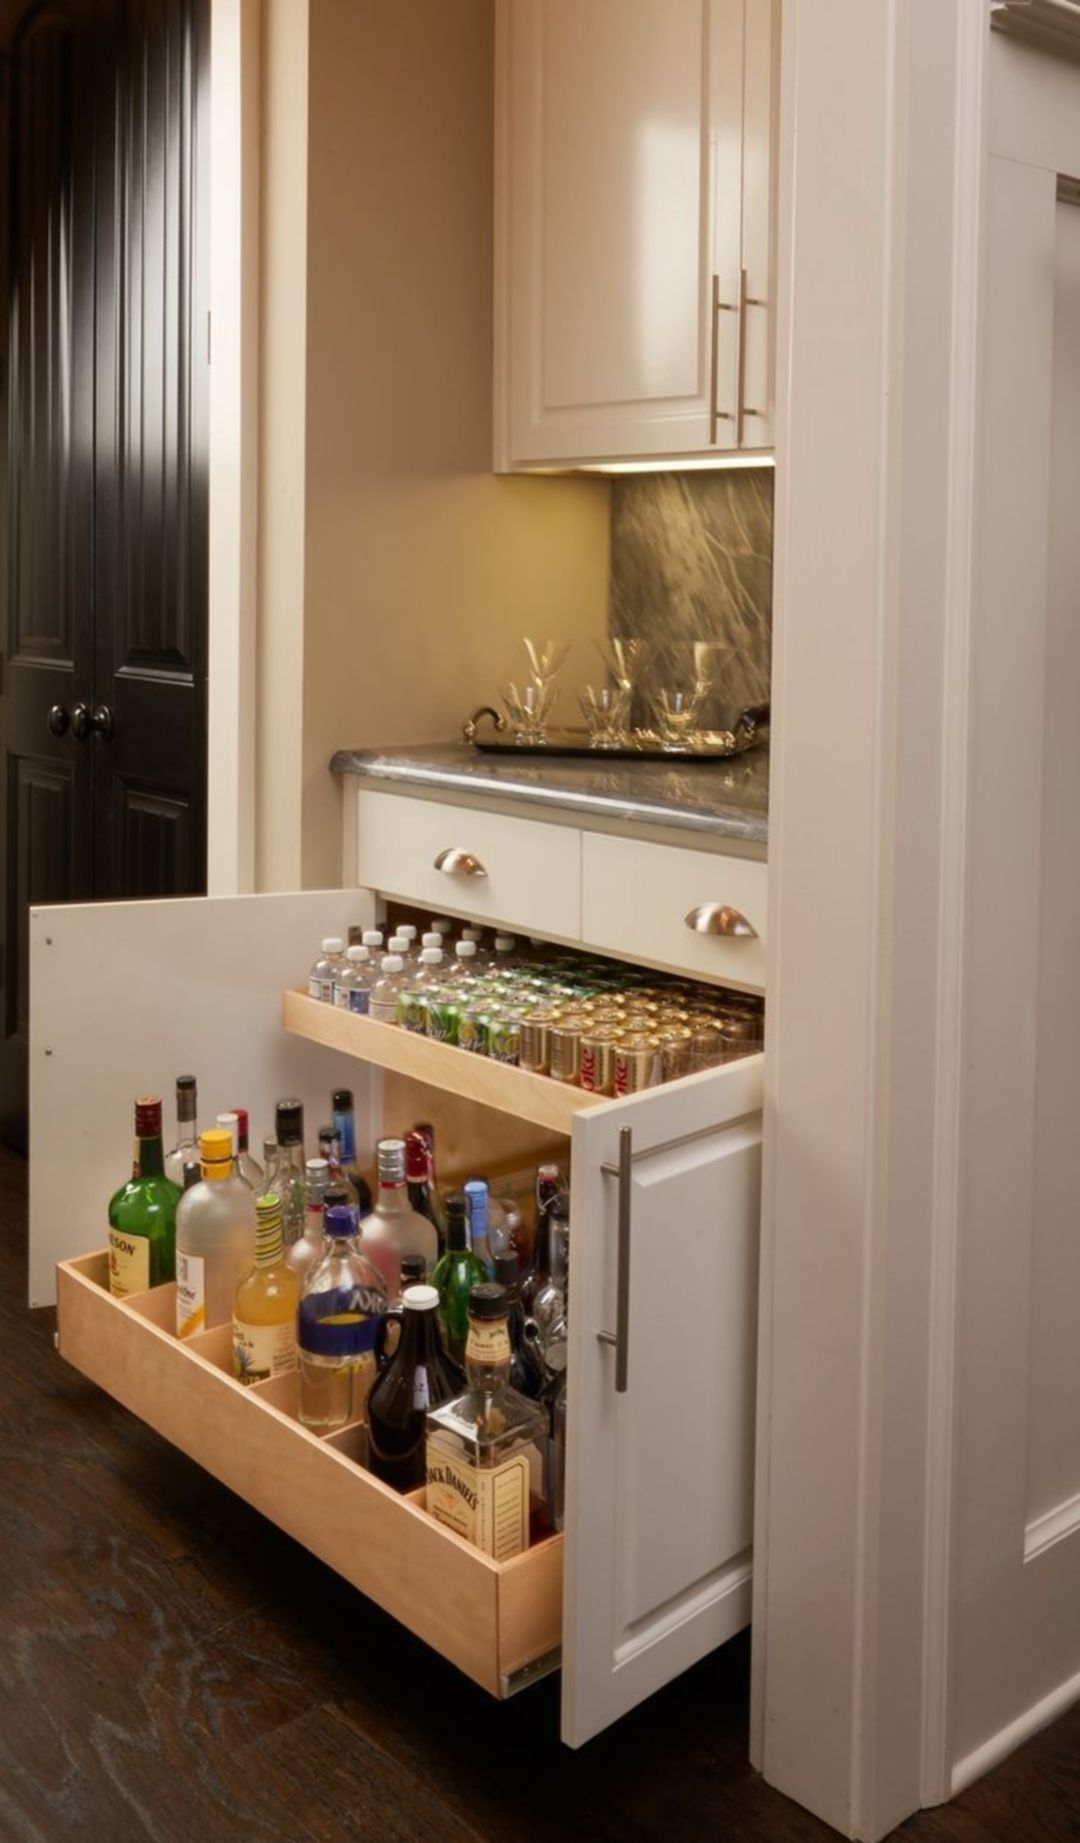 Best And Wonderful 13 Wet Dry Kitchen Ideas images